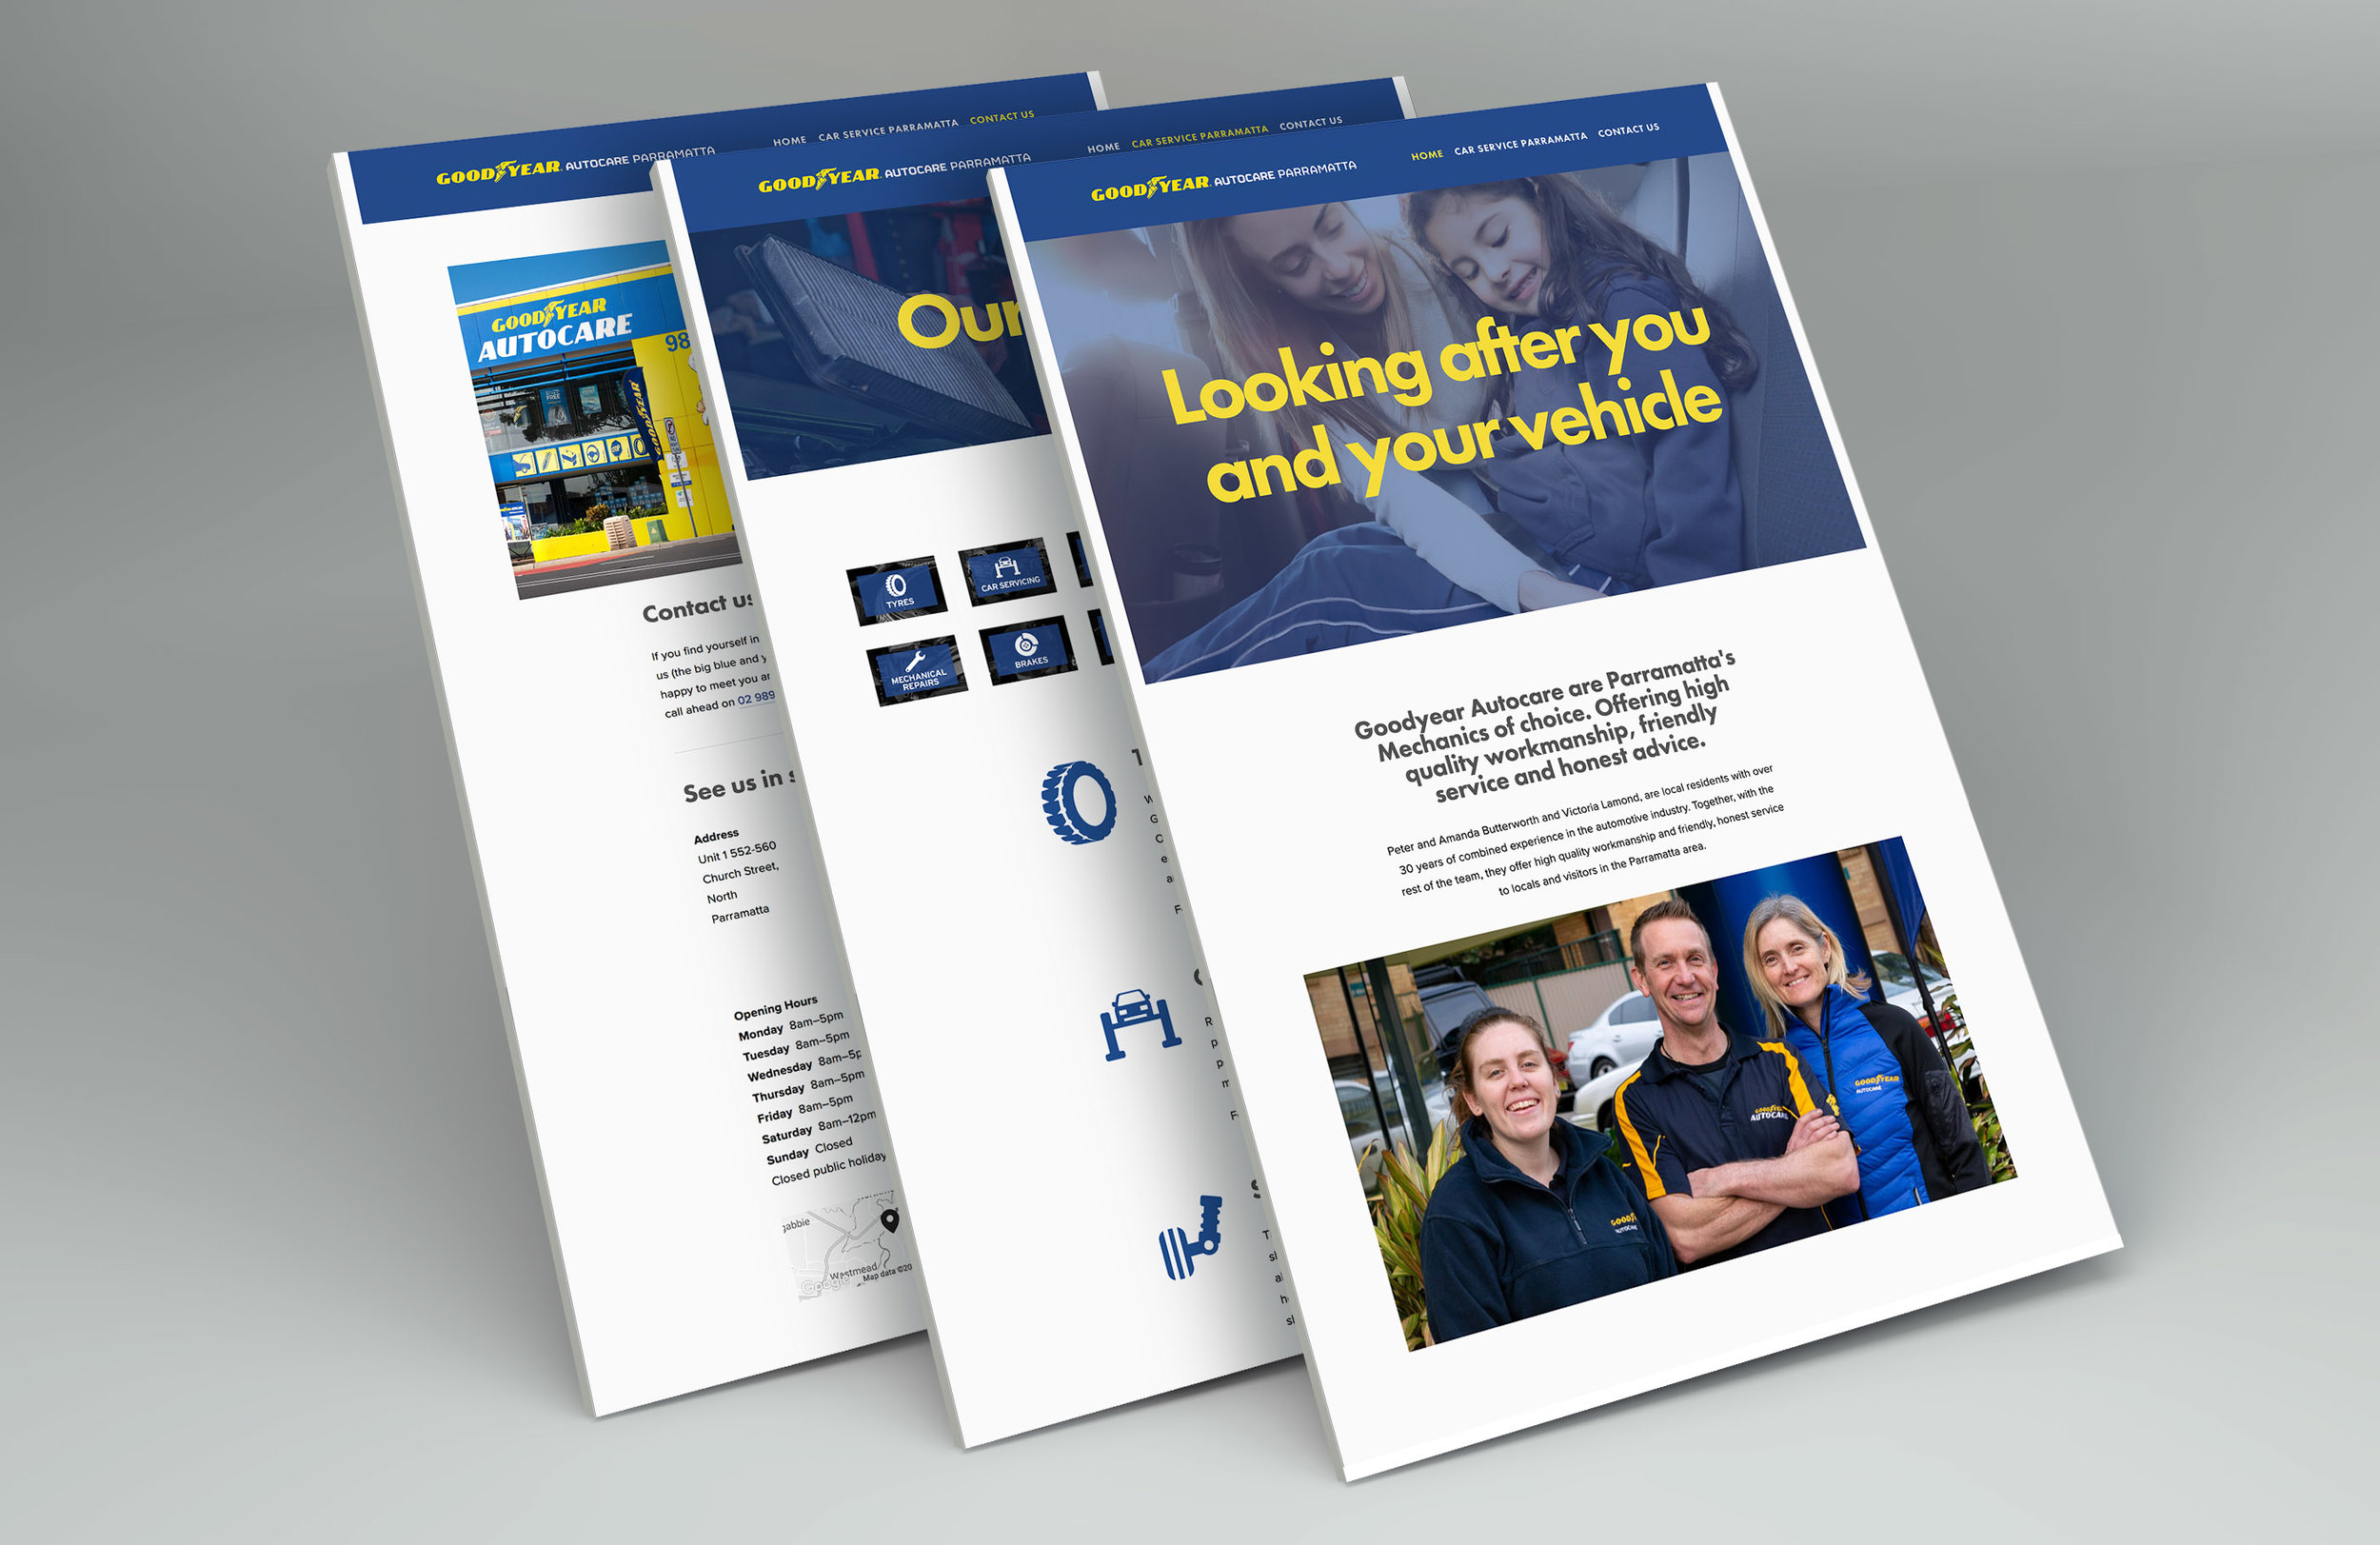 GoodyearParramatta_Perspective Web Design Mockup_cropped.jpg